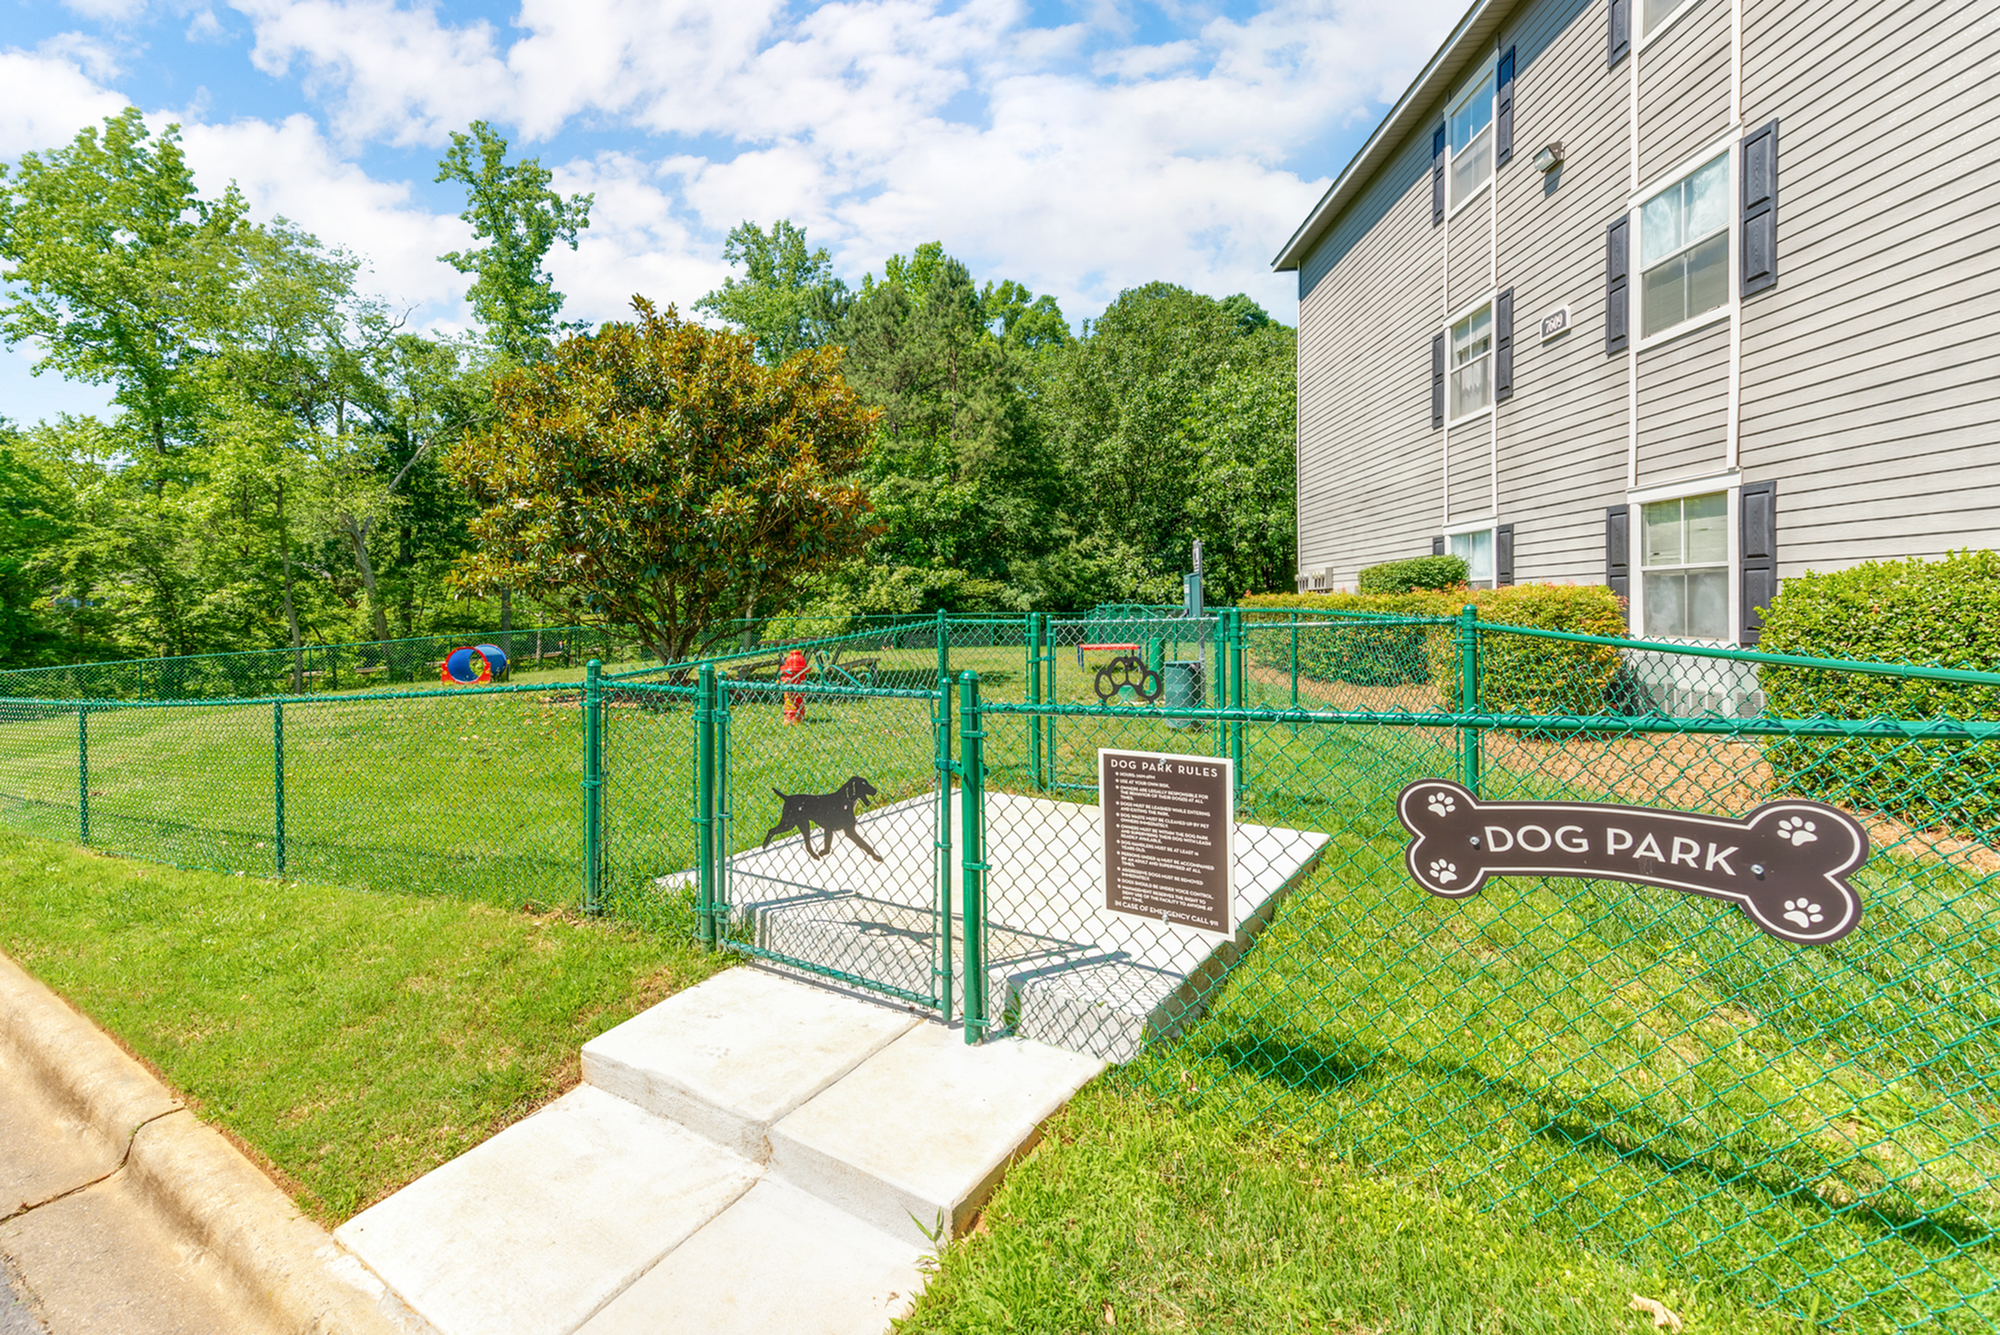 Enjoy Our Pet Park, With View of Fenced in Dog Agility Course and Grassy Area at Waterford Creek Apartments